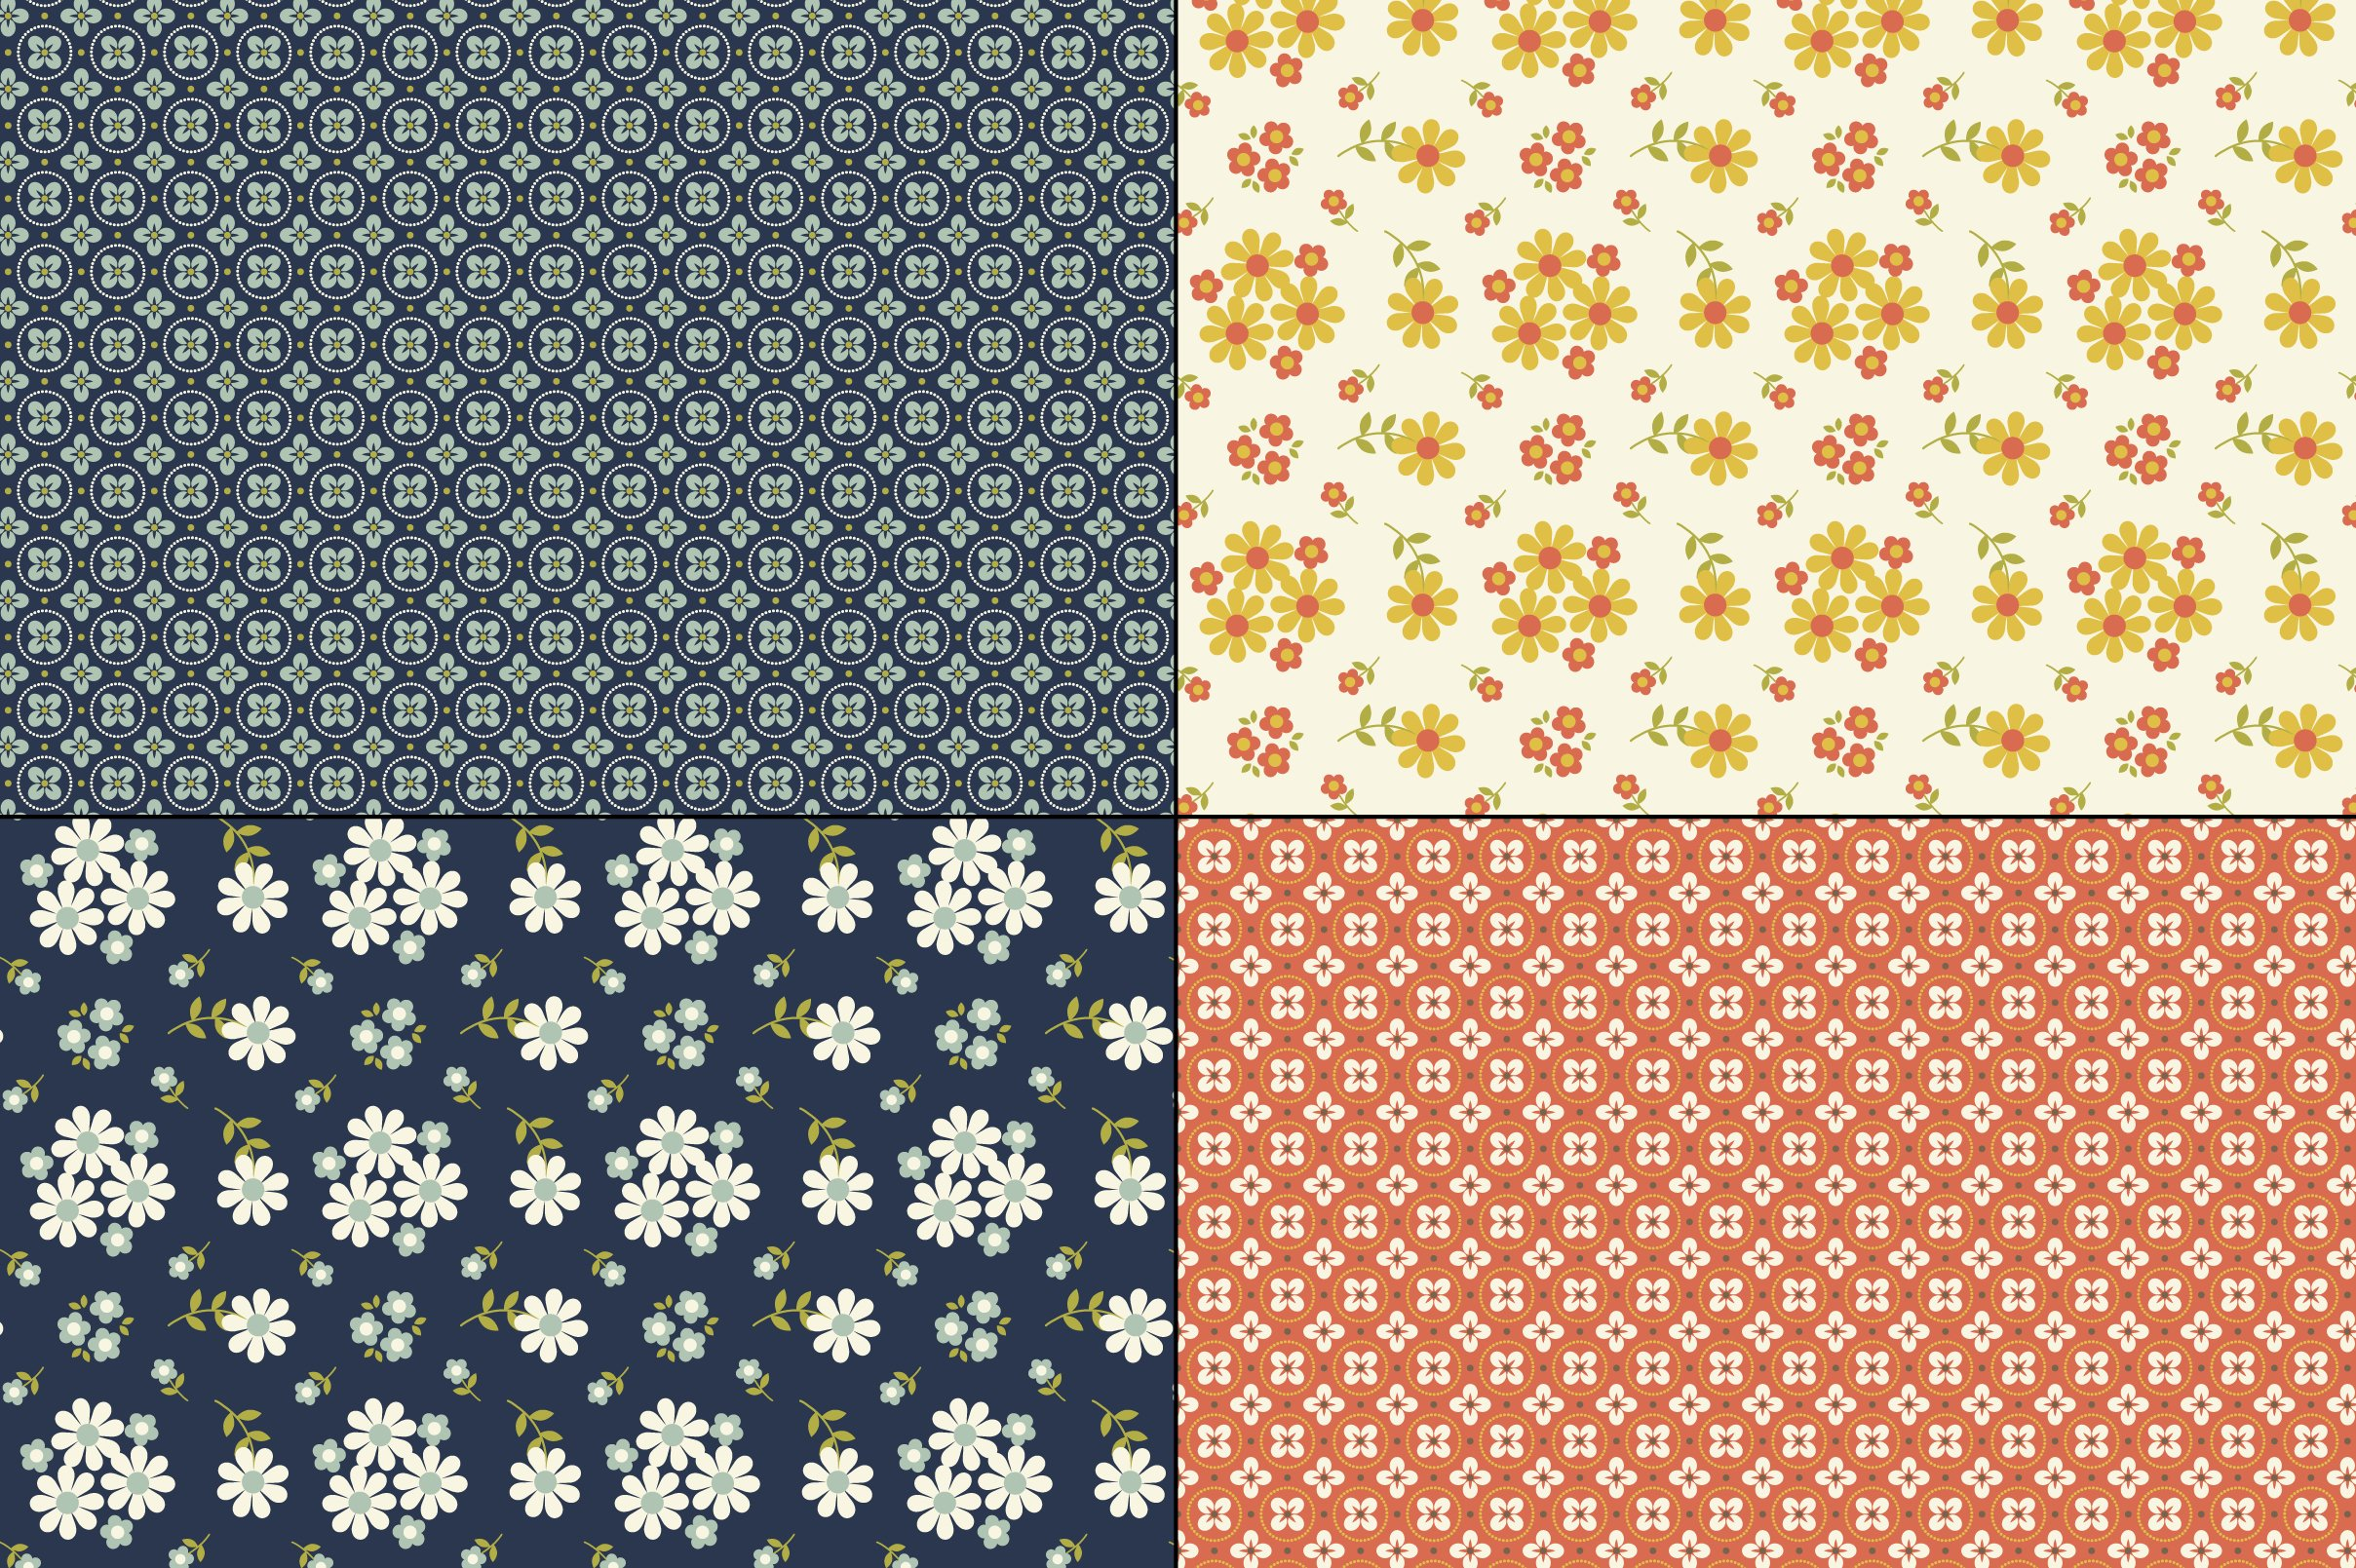 Seamless Retro Floral & Geometric Patterns example image 4